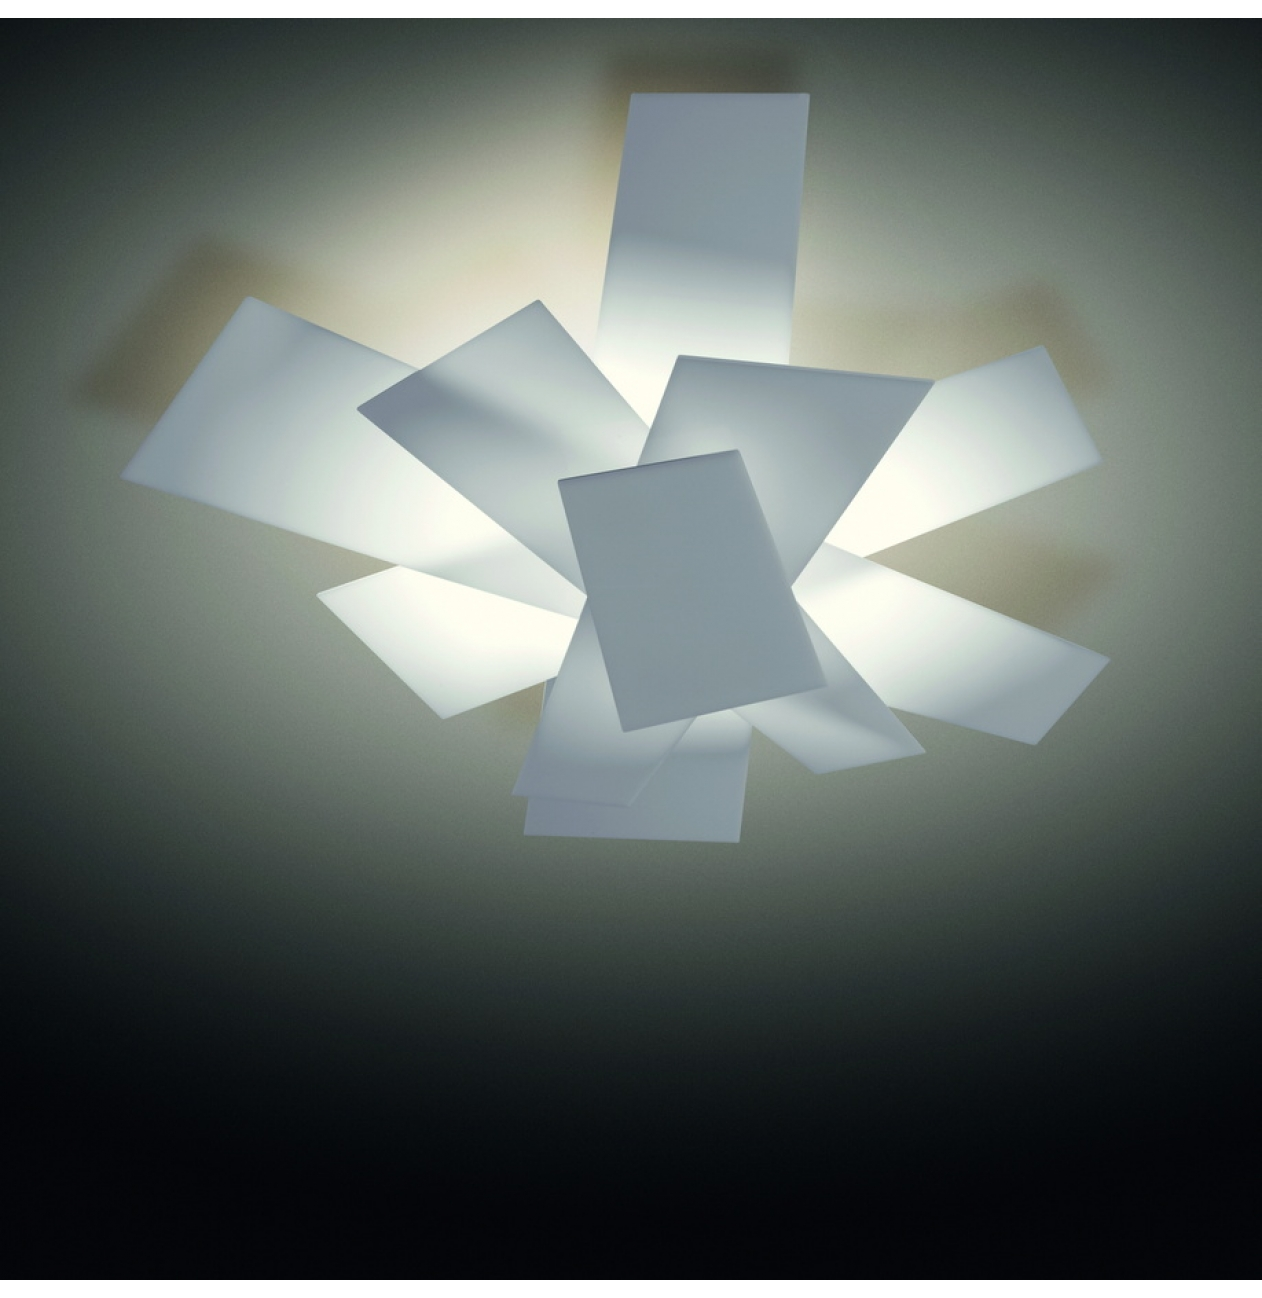 Foscarini wand plafondlamp big bang versteeg lichtstudio for Plafondverlichting